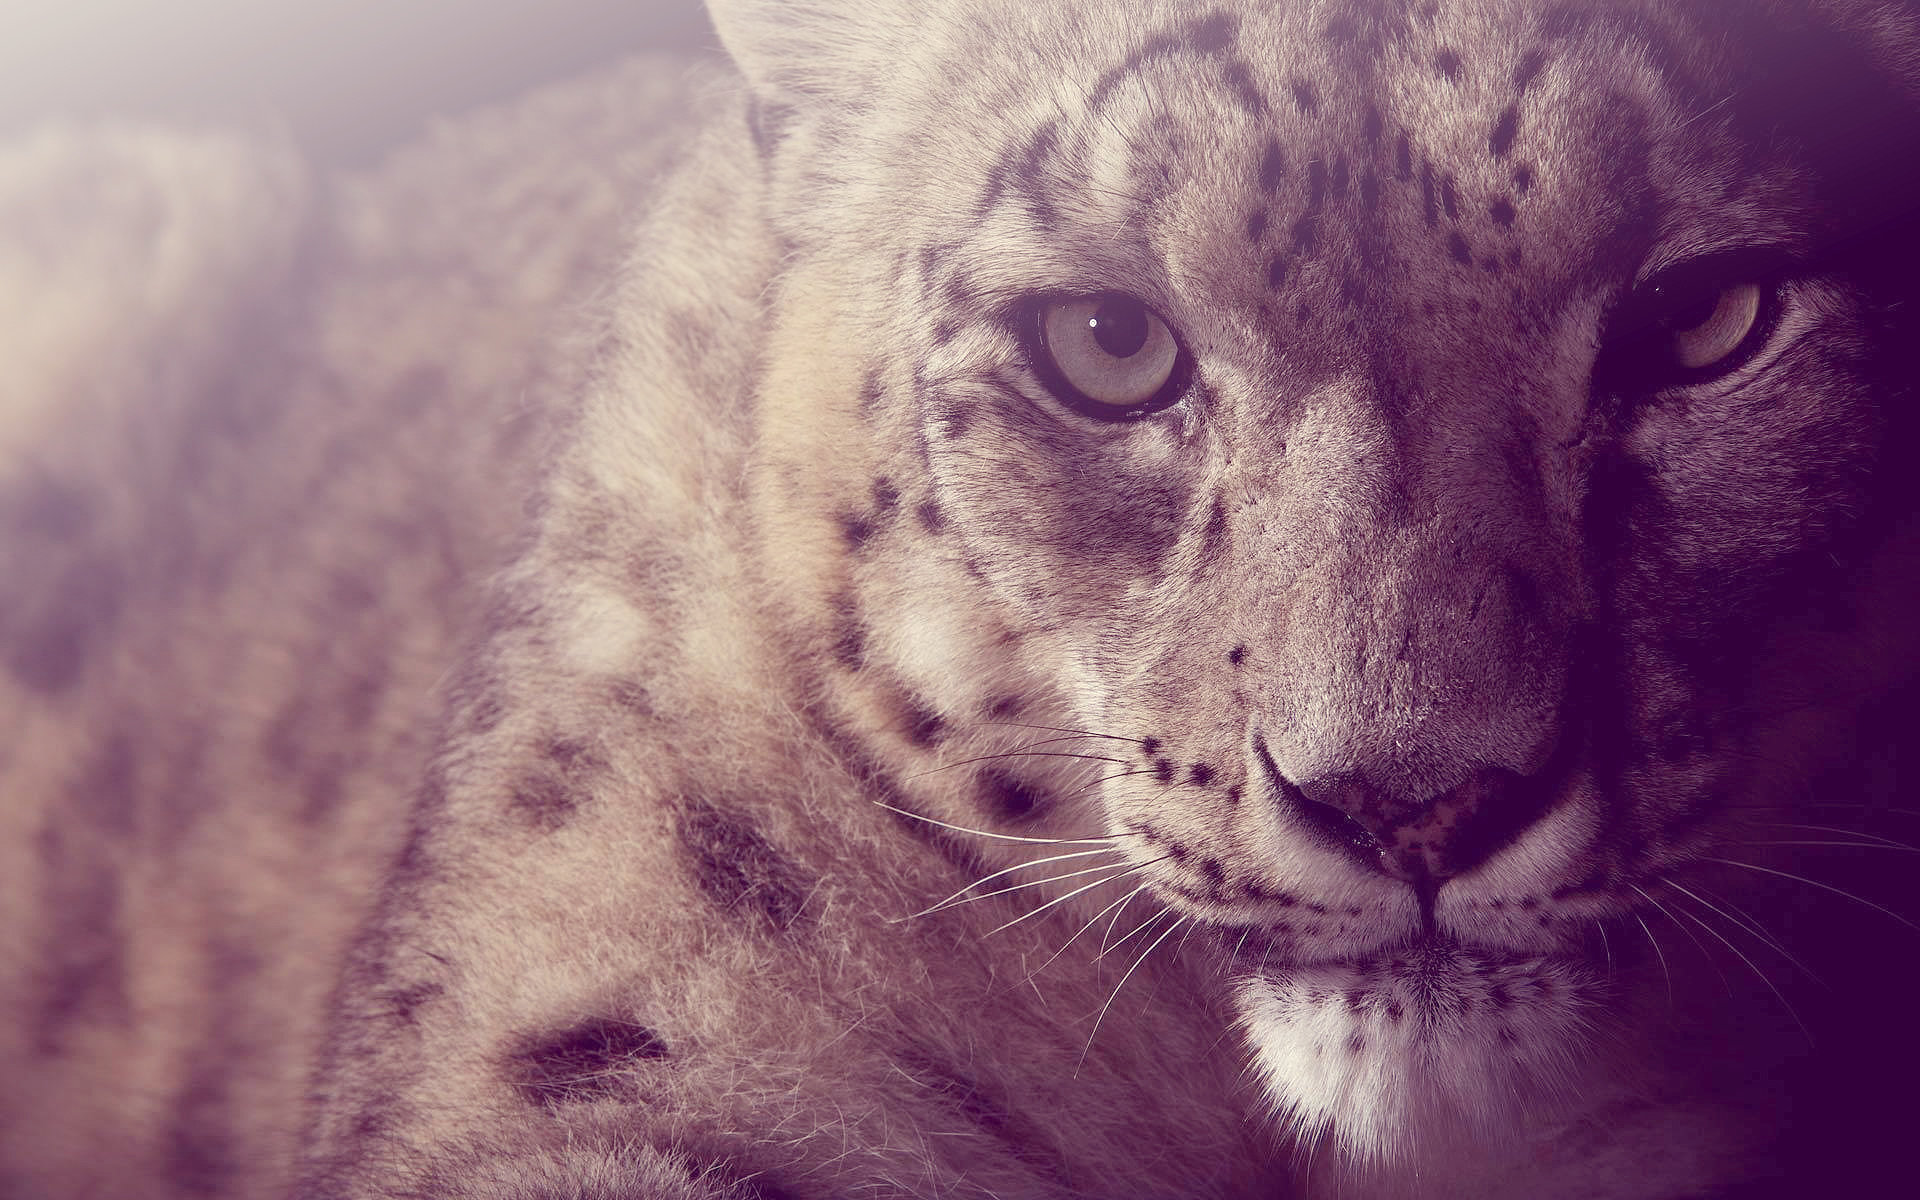 Snow Leopard Wallpapers 1920x1200 Desktop Backgrounds